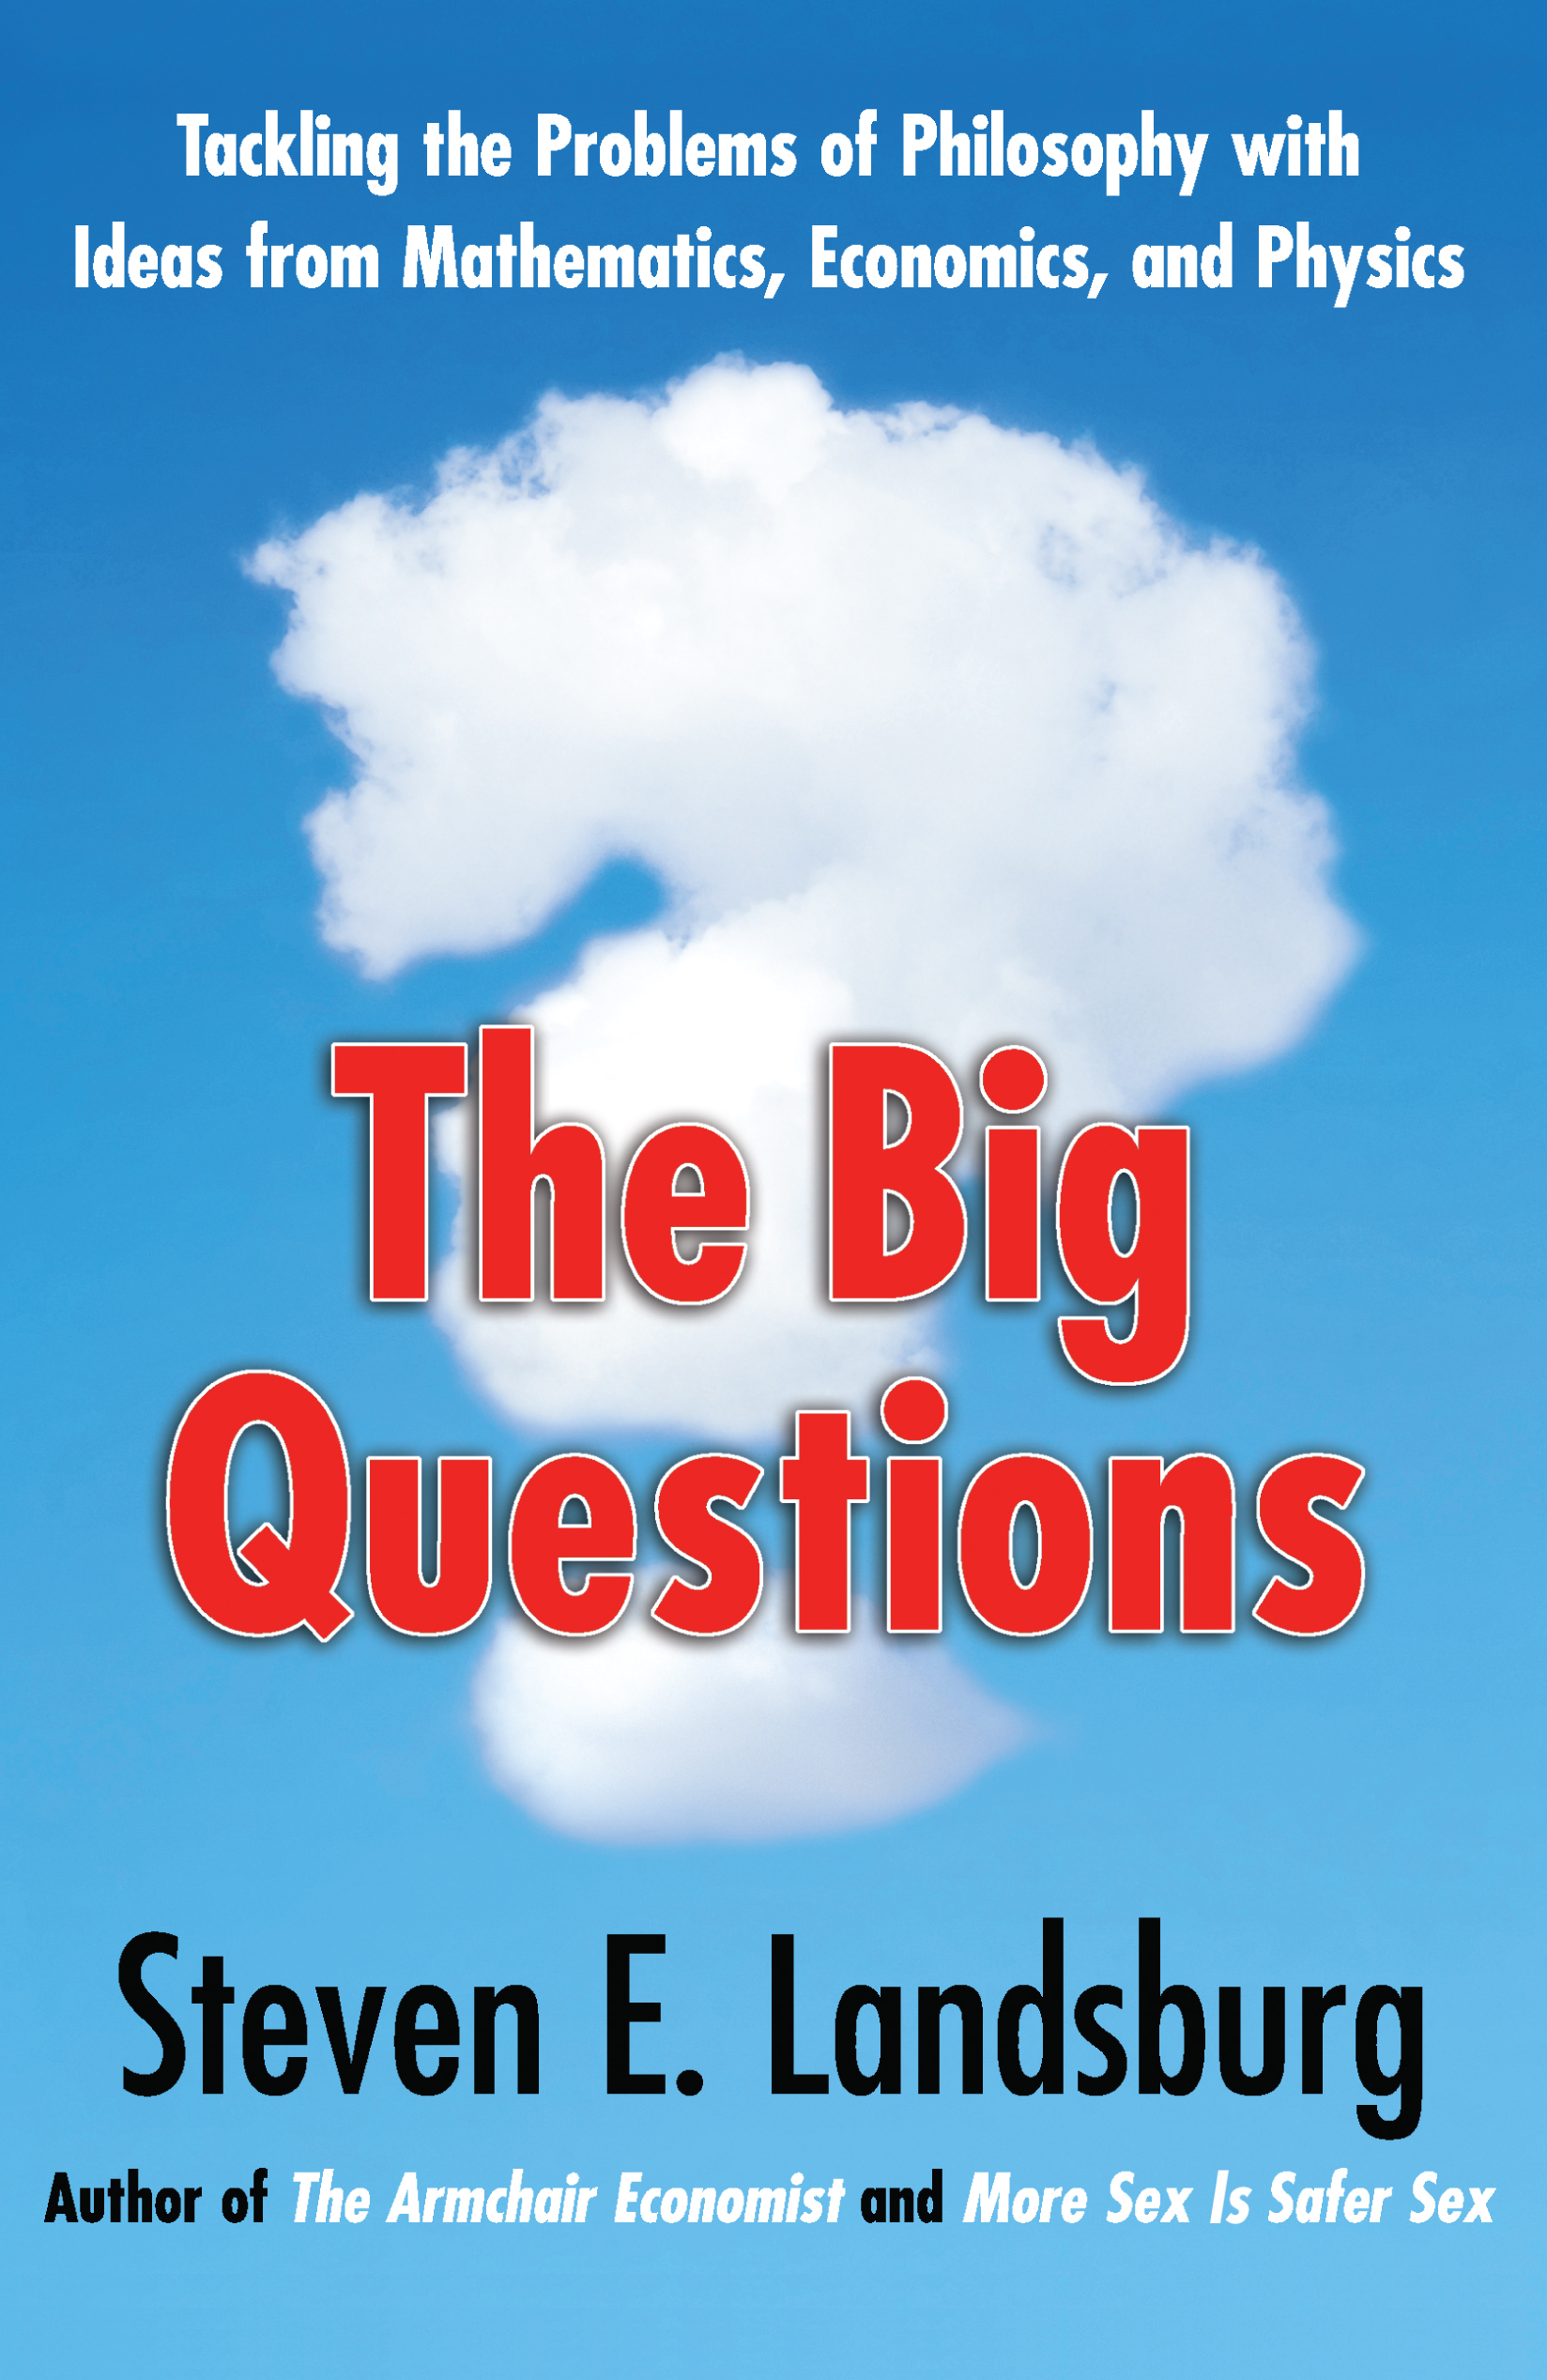 The big questions book by steven e landsburg official publisher cvr9781439148228 9781439148228 hr fandeluxe Image collections